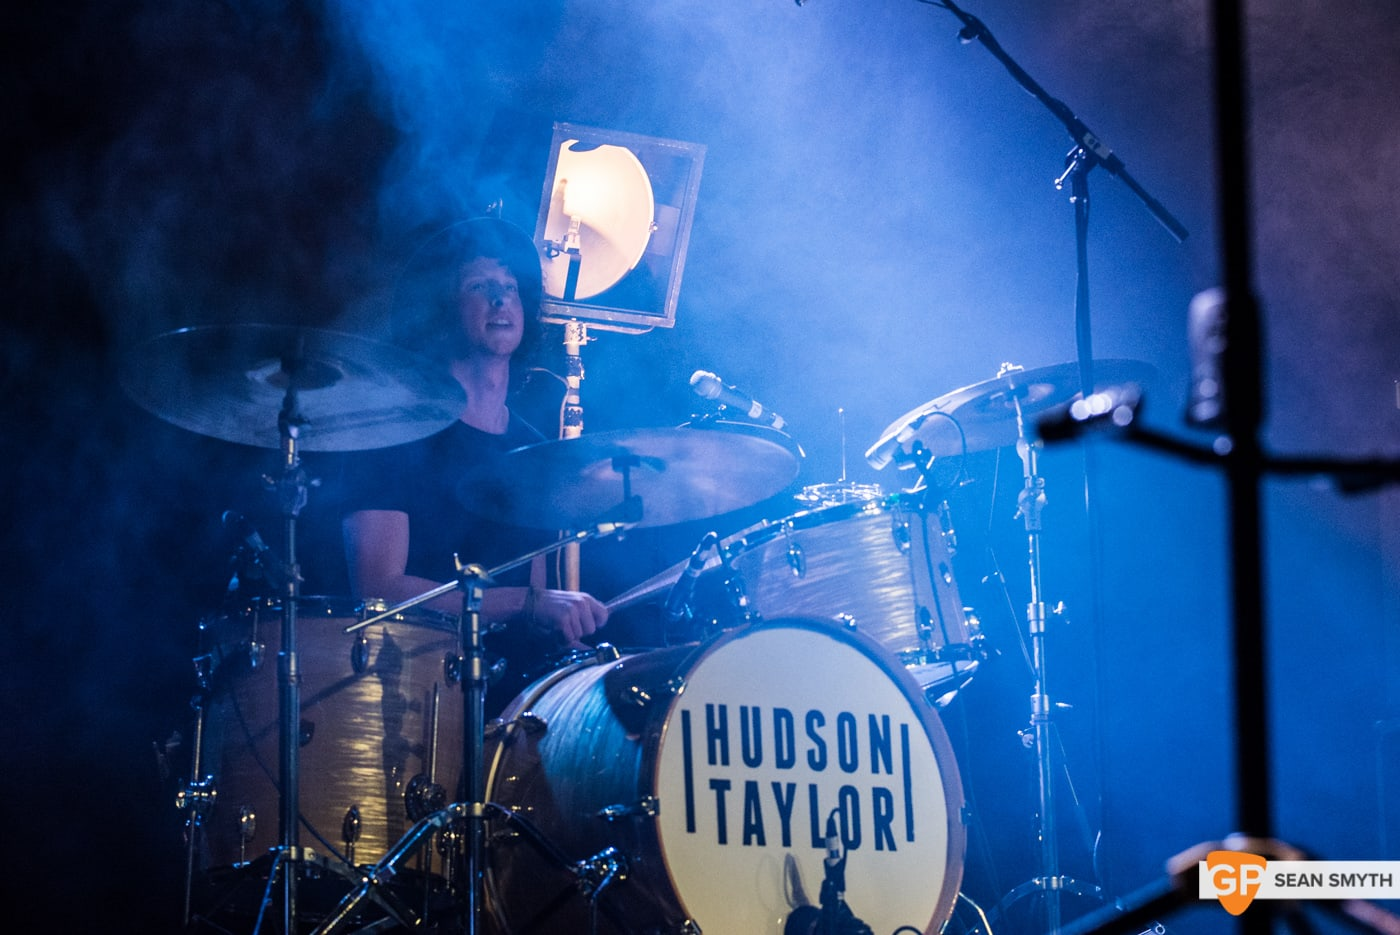 hudson-taylor-at-the-olympia-theatre-26-2-15-by-sean-smyth-25-of-26_16570634429_o